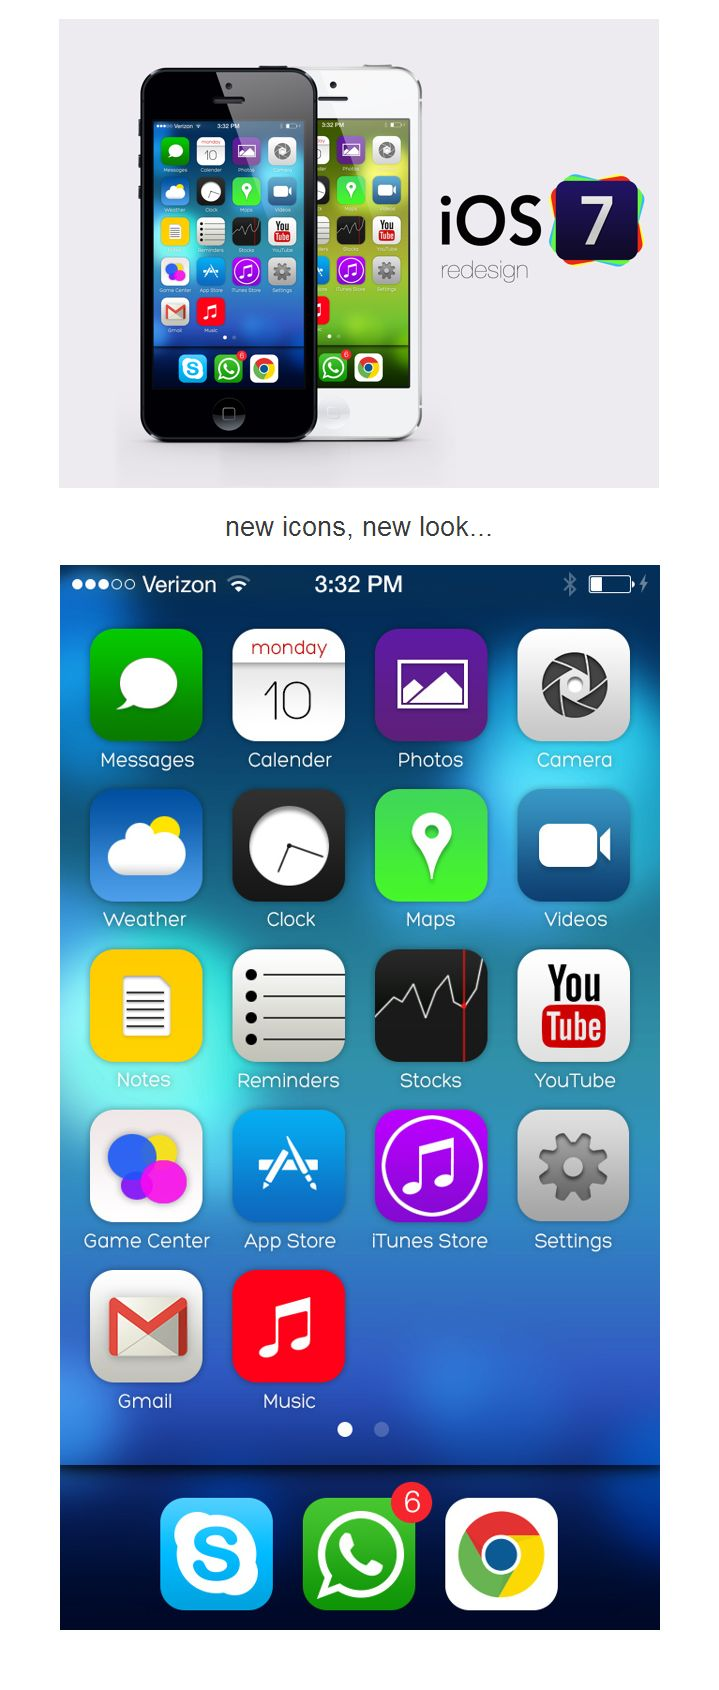 ios7 redesign . new icons, new look.  #ios7 #design #icons #nikhil